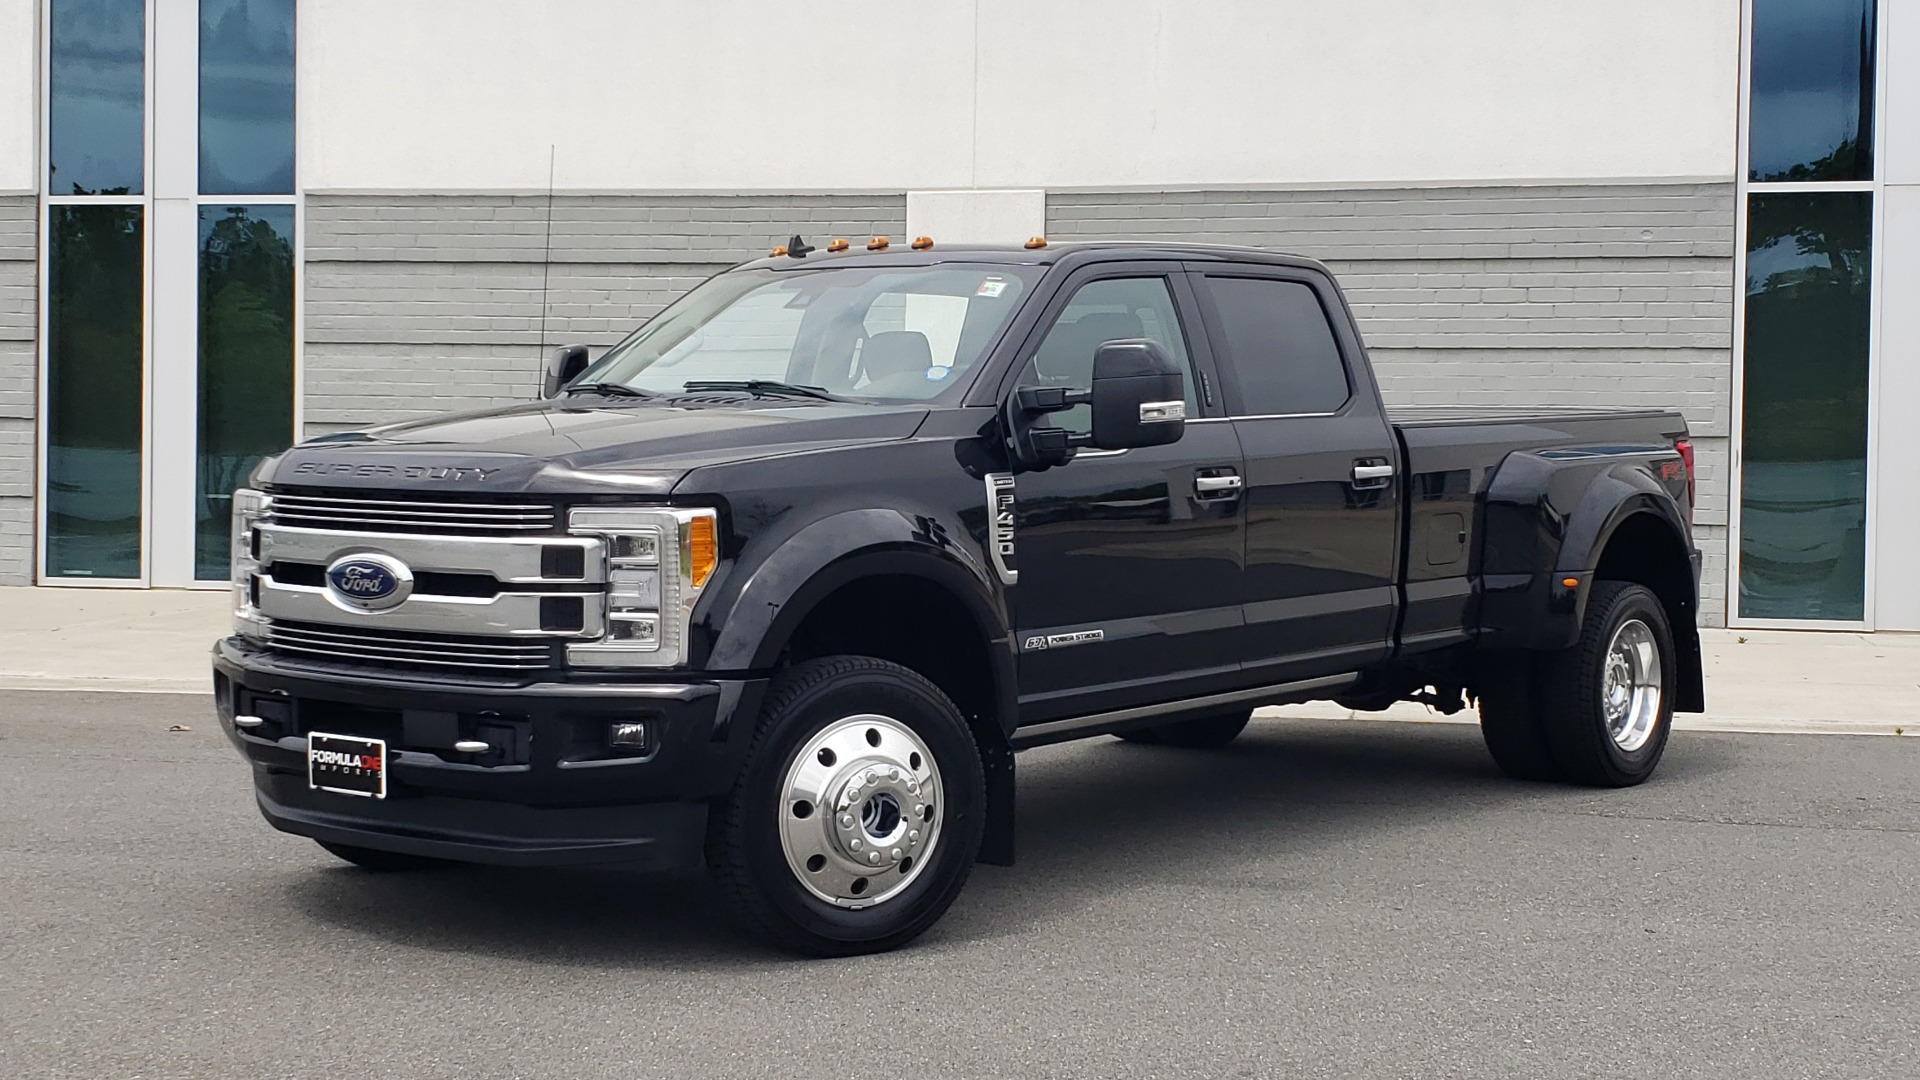 Used 2019 Ford SUPER DUTY F-450 DRW LIMITED / 4X4 / CREWCAB 176IN WB / LOADED / LOW MILES for sale Sold at Formula Imports in Charlotte NC 28227 1